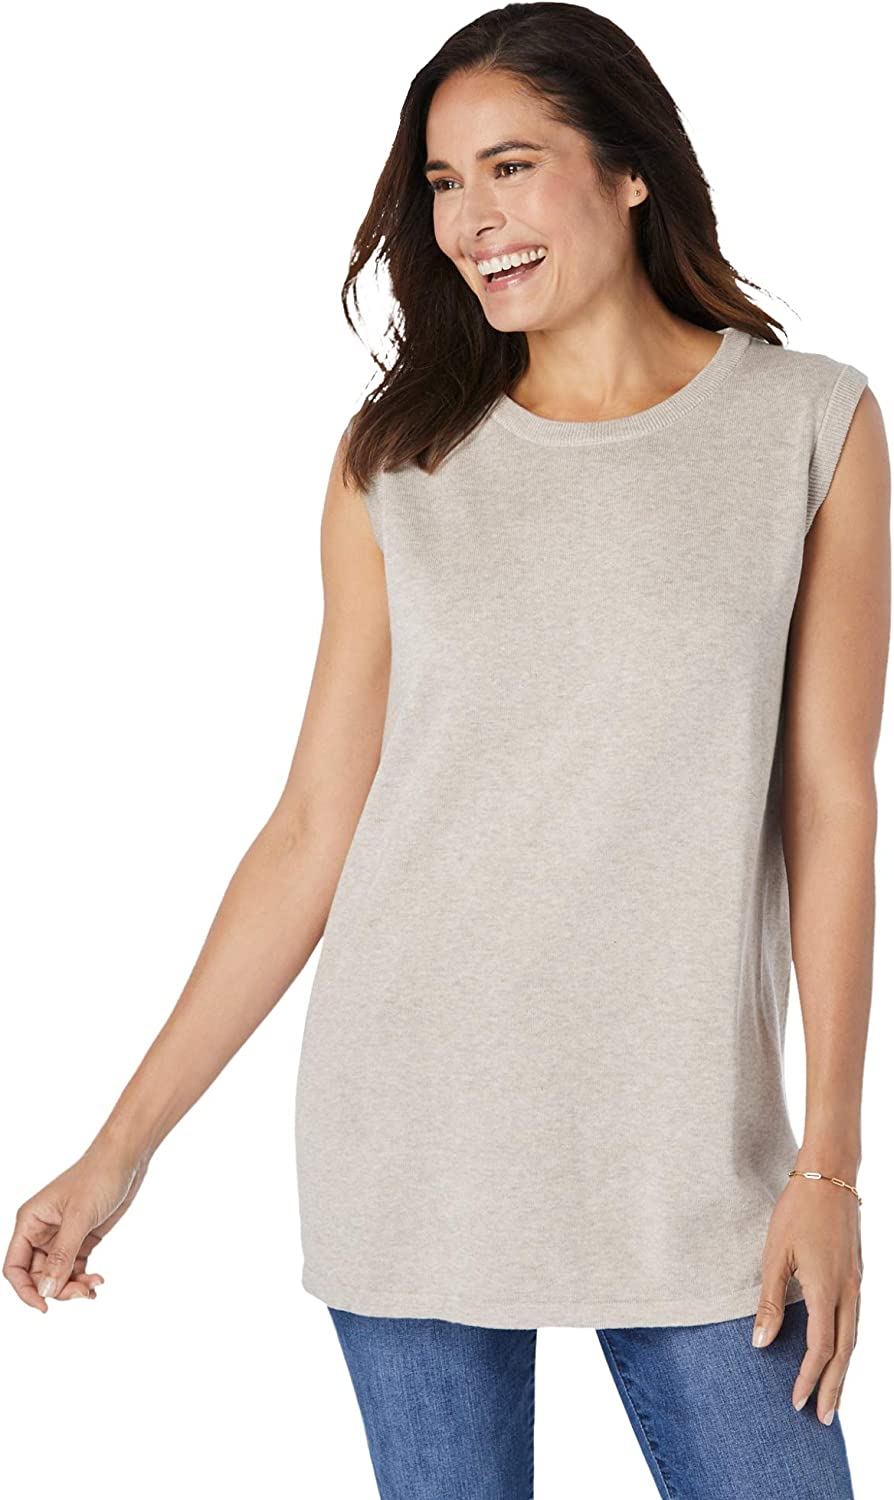 Woman Within Women's Plus Size Perfect Cotton Sleeveless Crewneck Pullover - 30/32, Heather Sand Beige